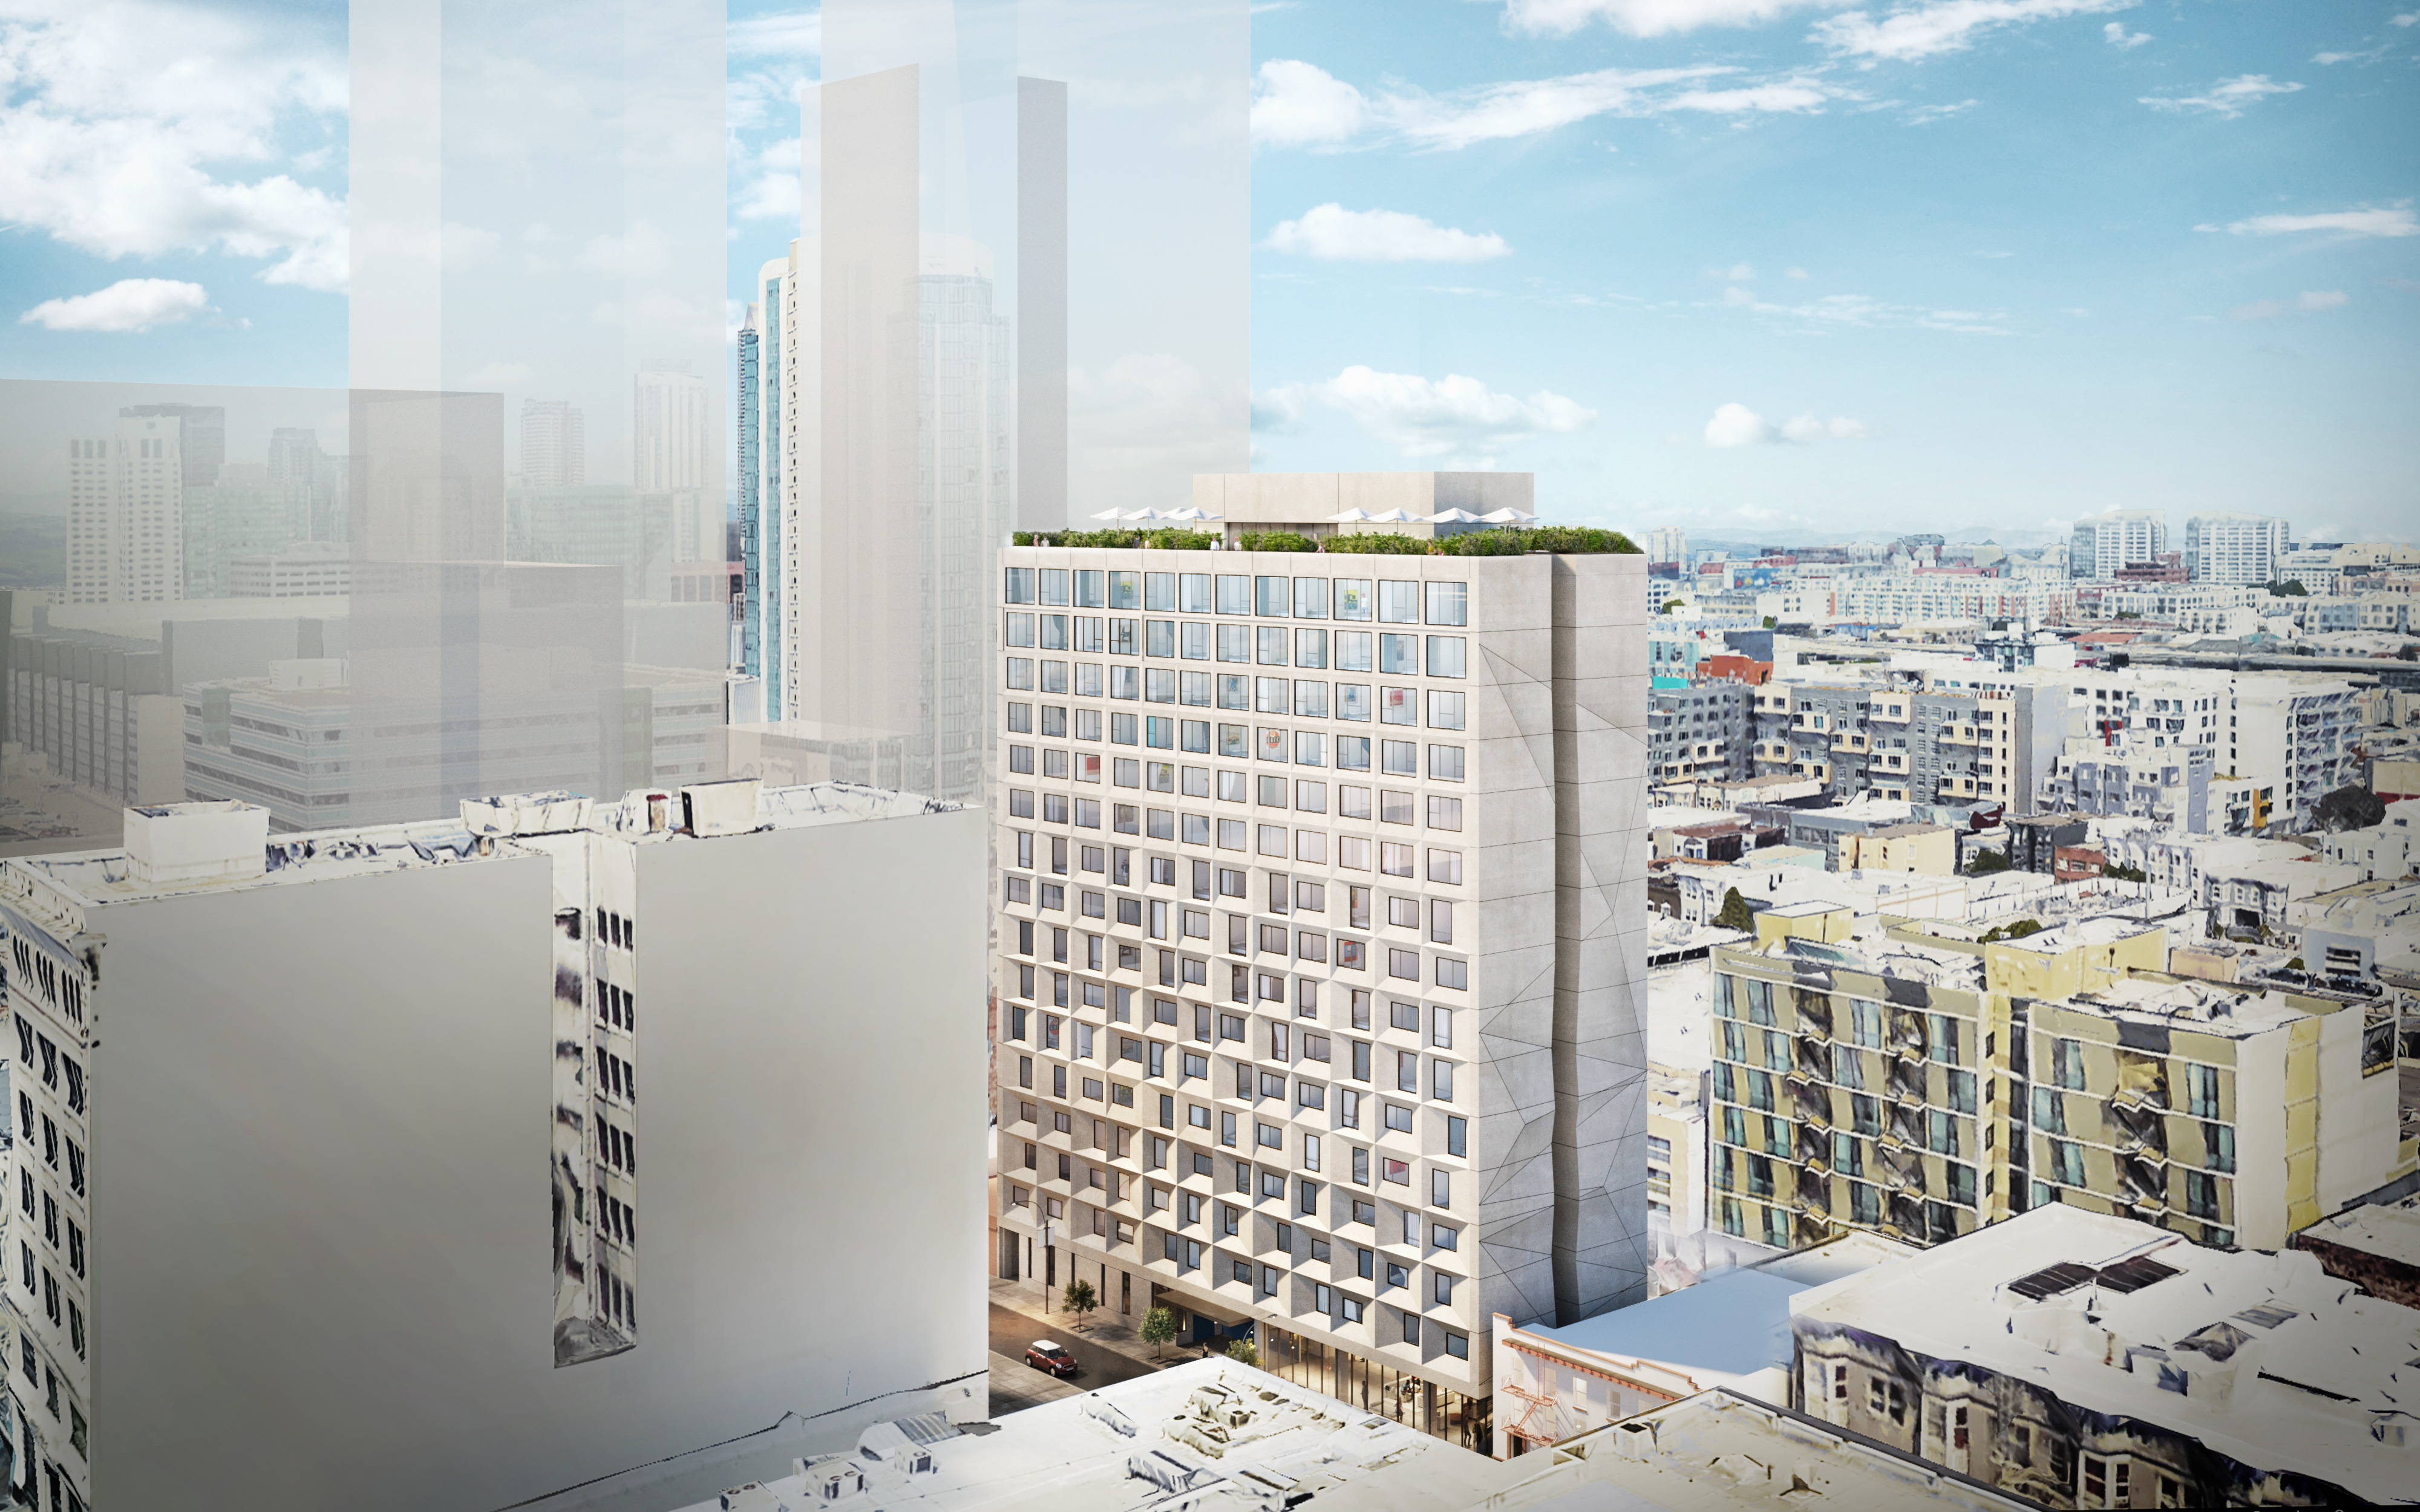 Coliving scales up with larger buildings, and bigger ambitions